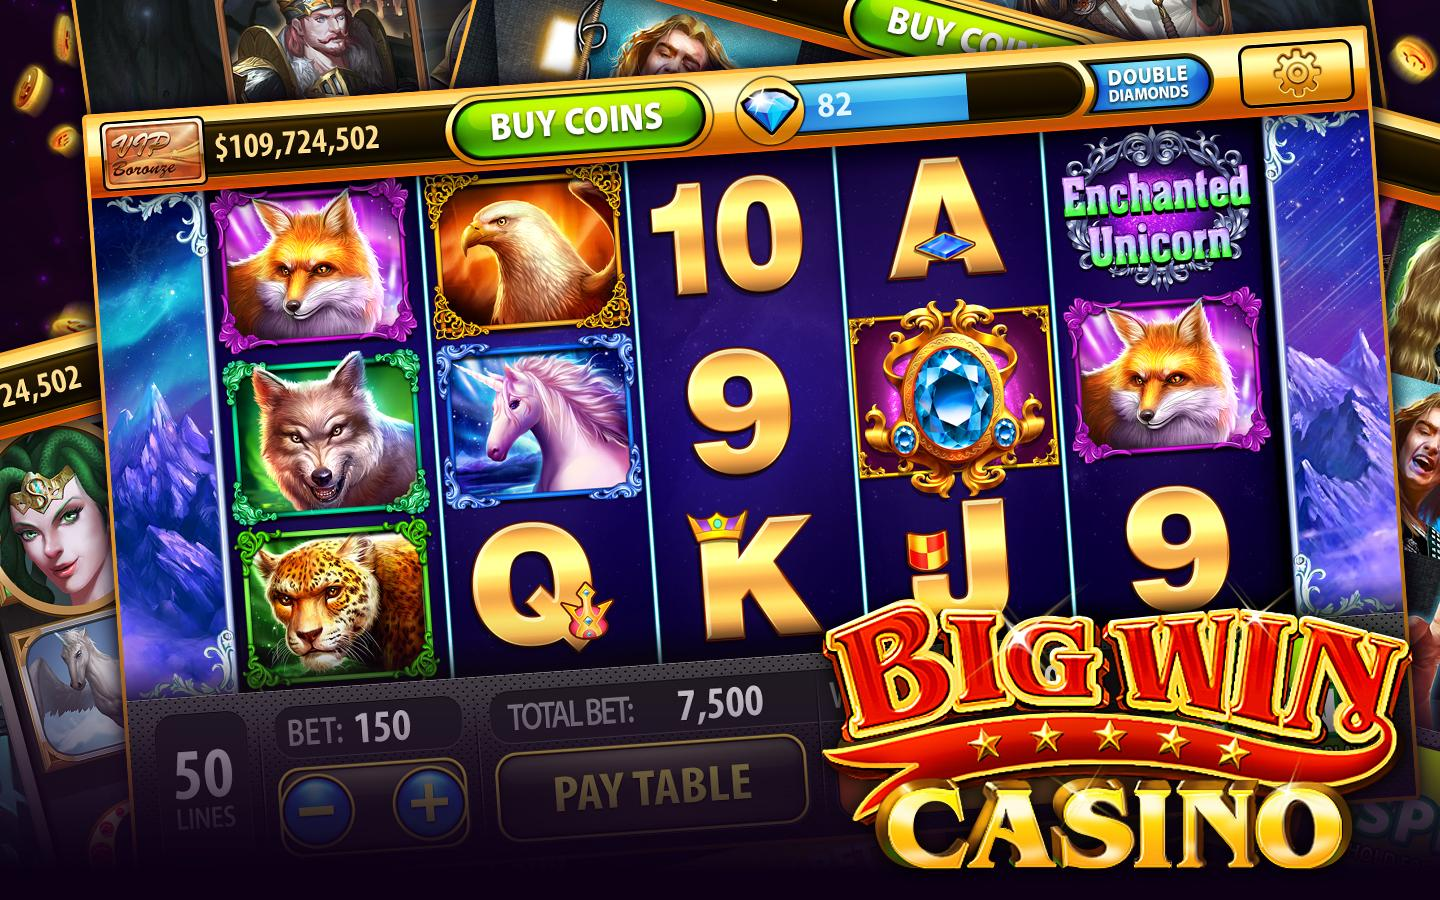 Casino games | Euro Palace Casino Blog - Part 45